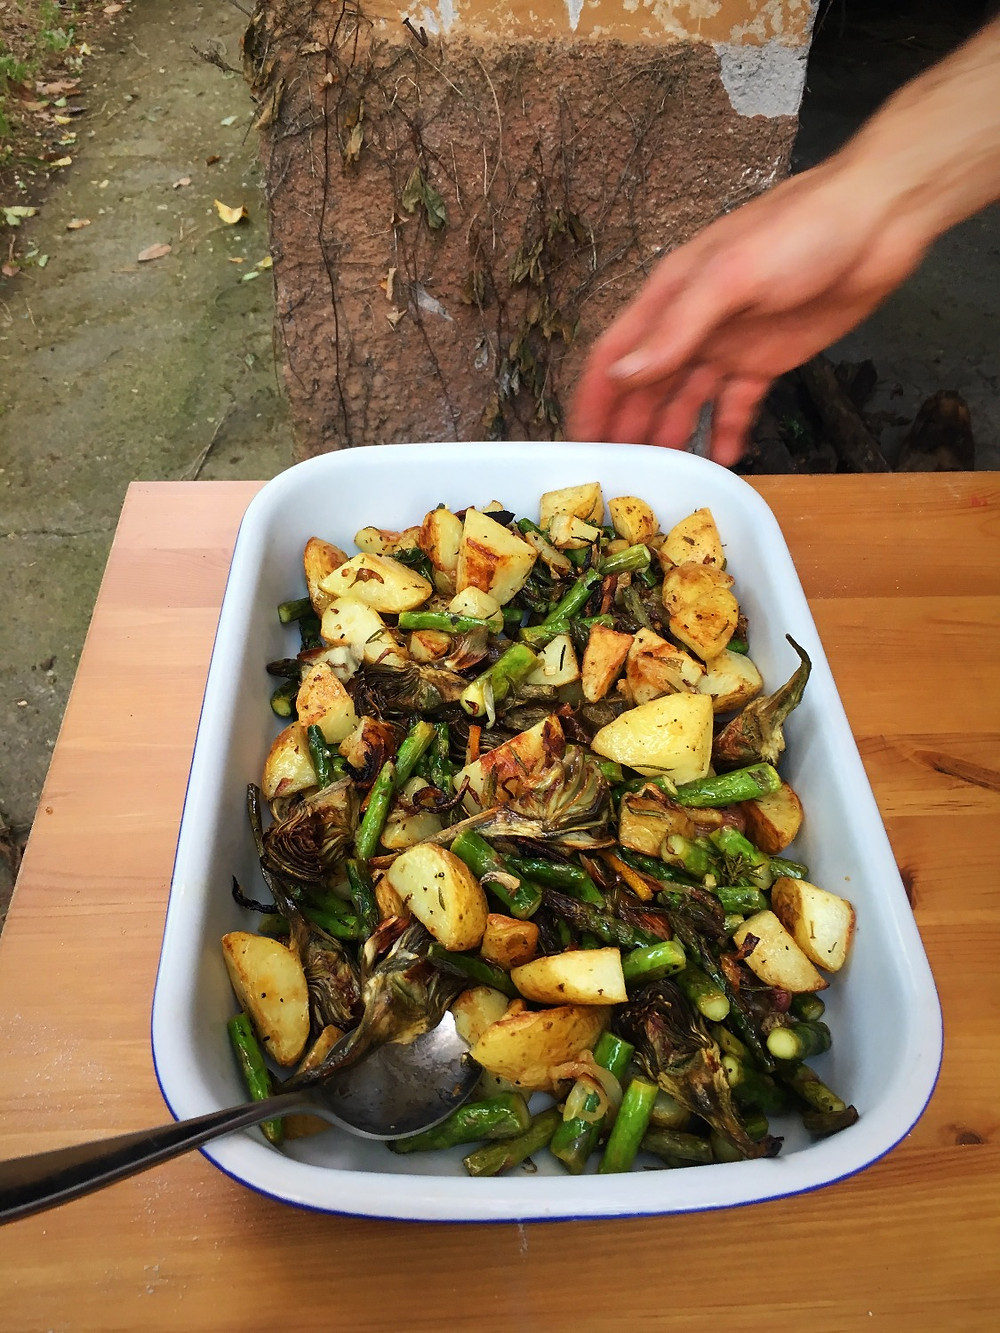 Roasted asparagus and new potatoes